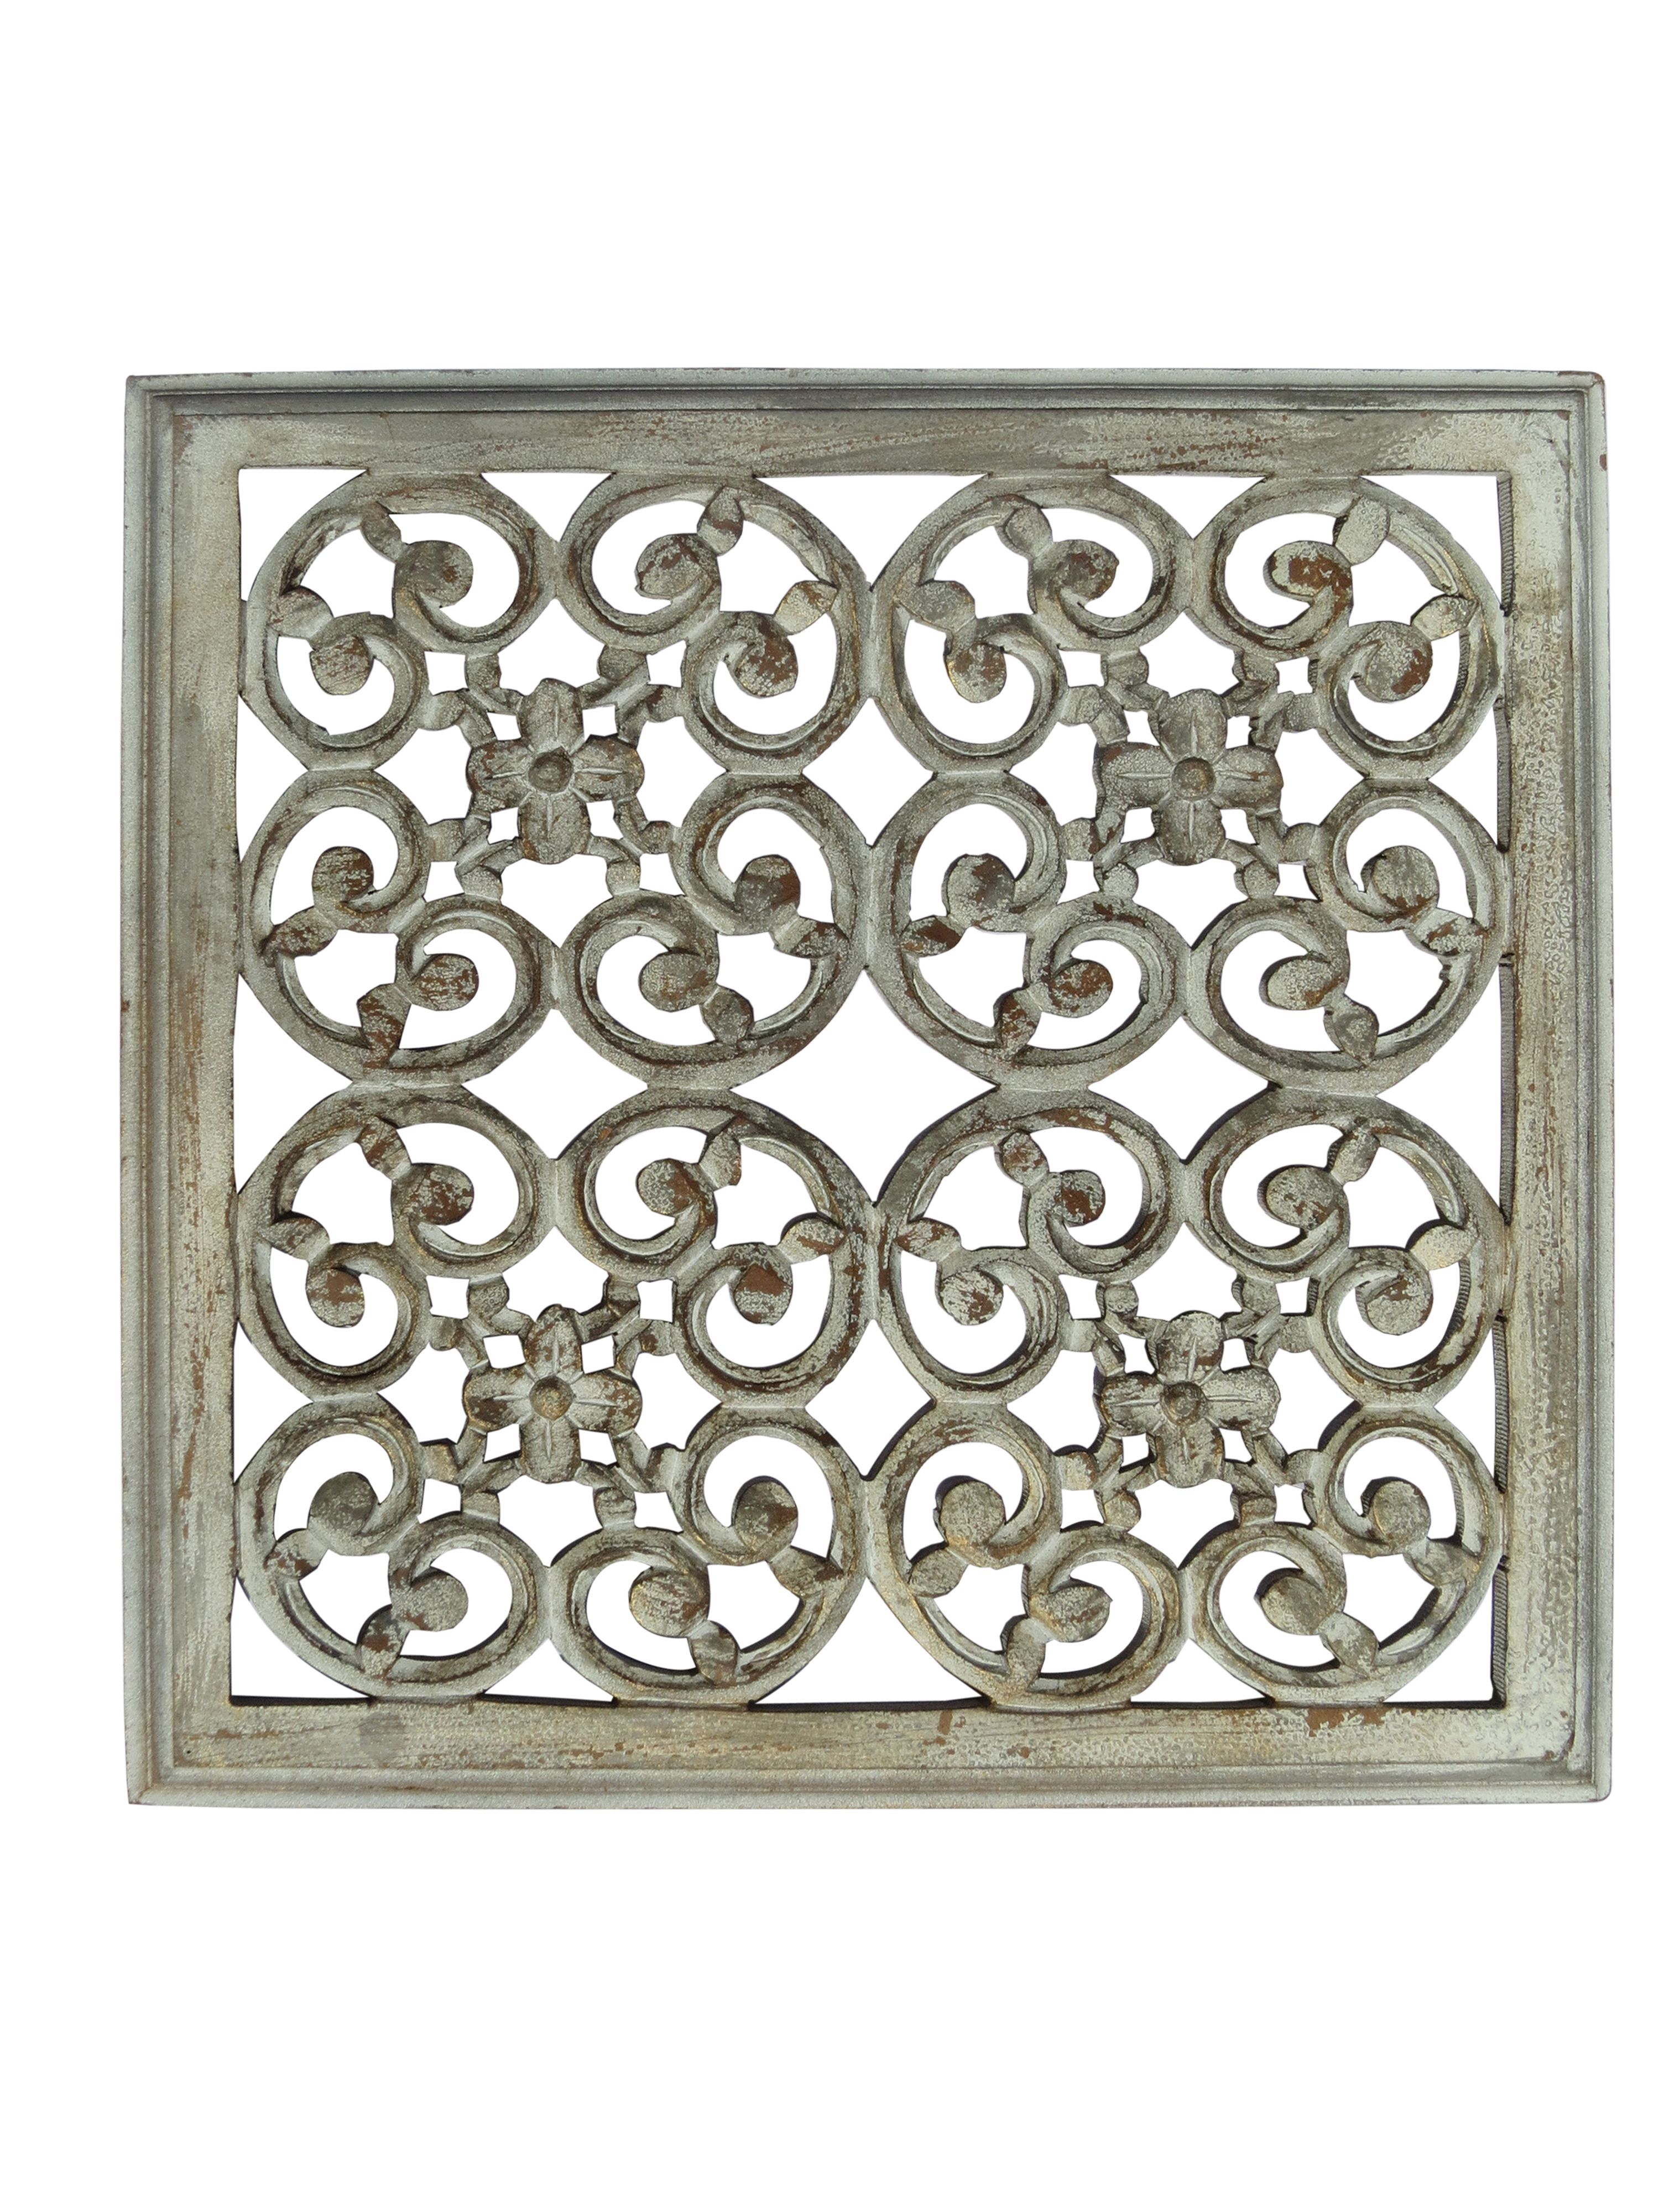 Mdf Carved Panel Design In White And Brown Antique Finish Reliable Durable Indian Authentic Handicrafts With Hand Carved Wood Wood Paneling Class Decoration